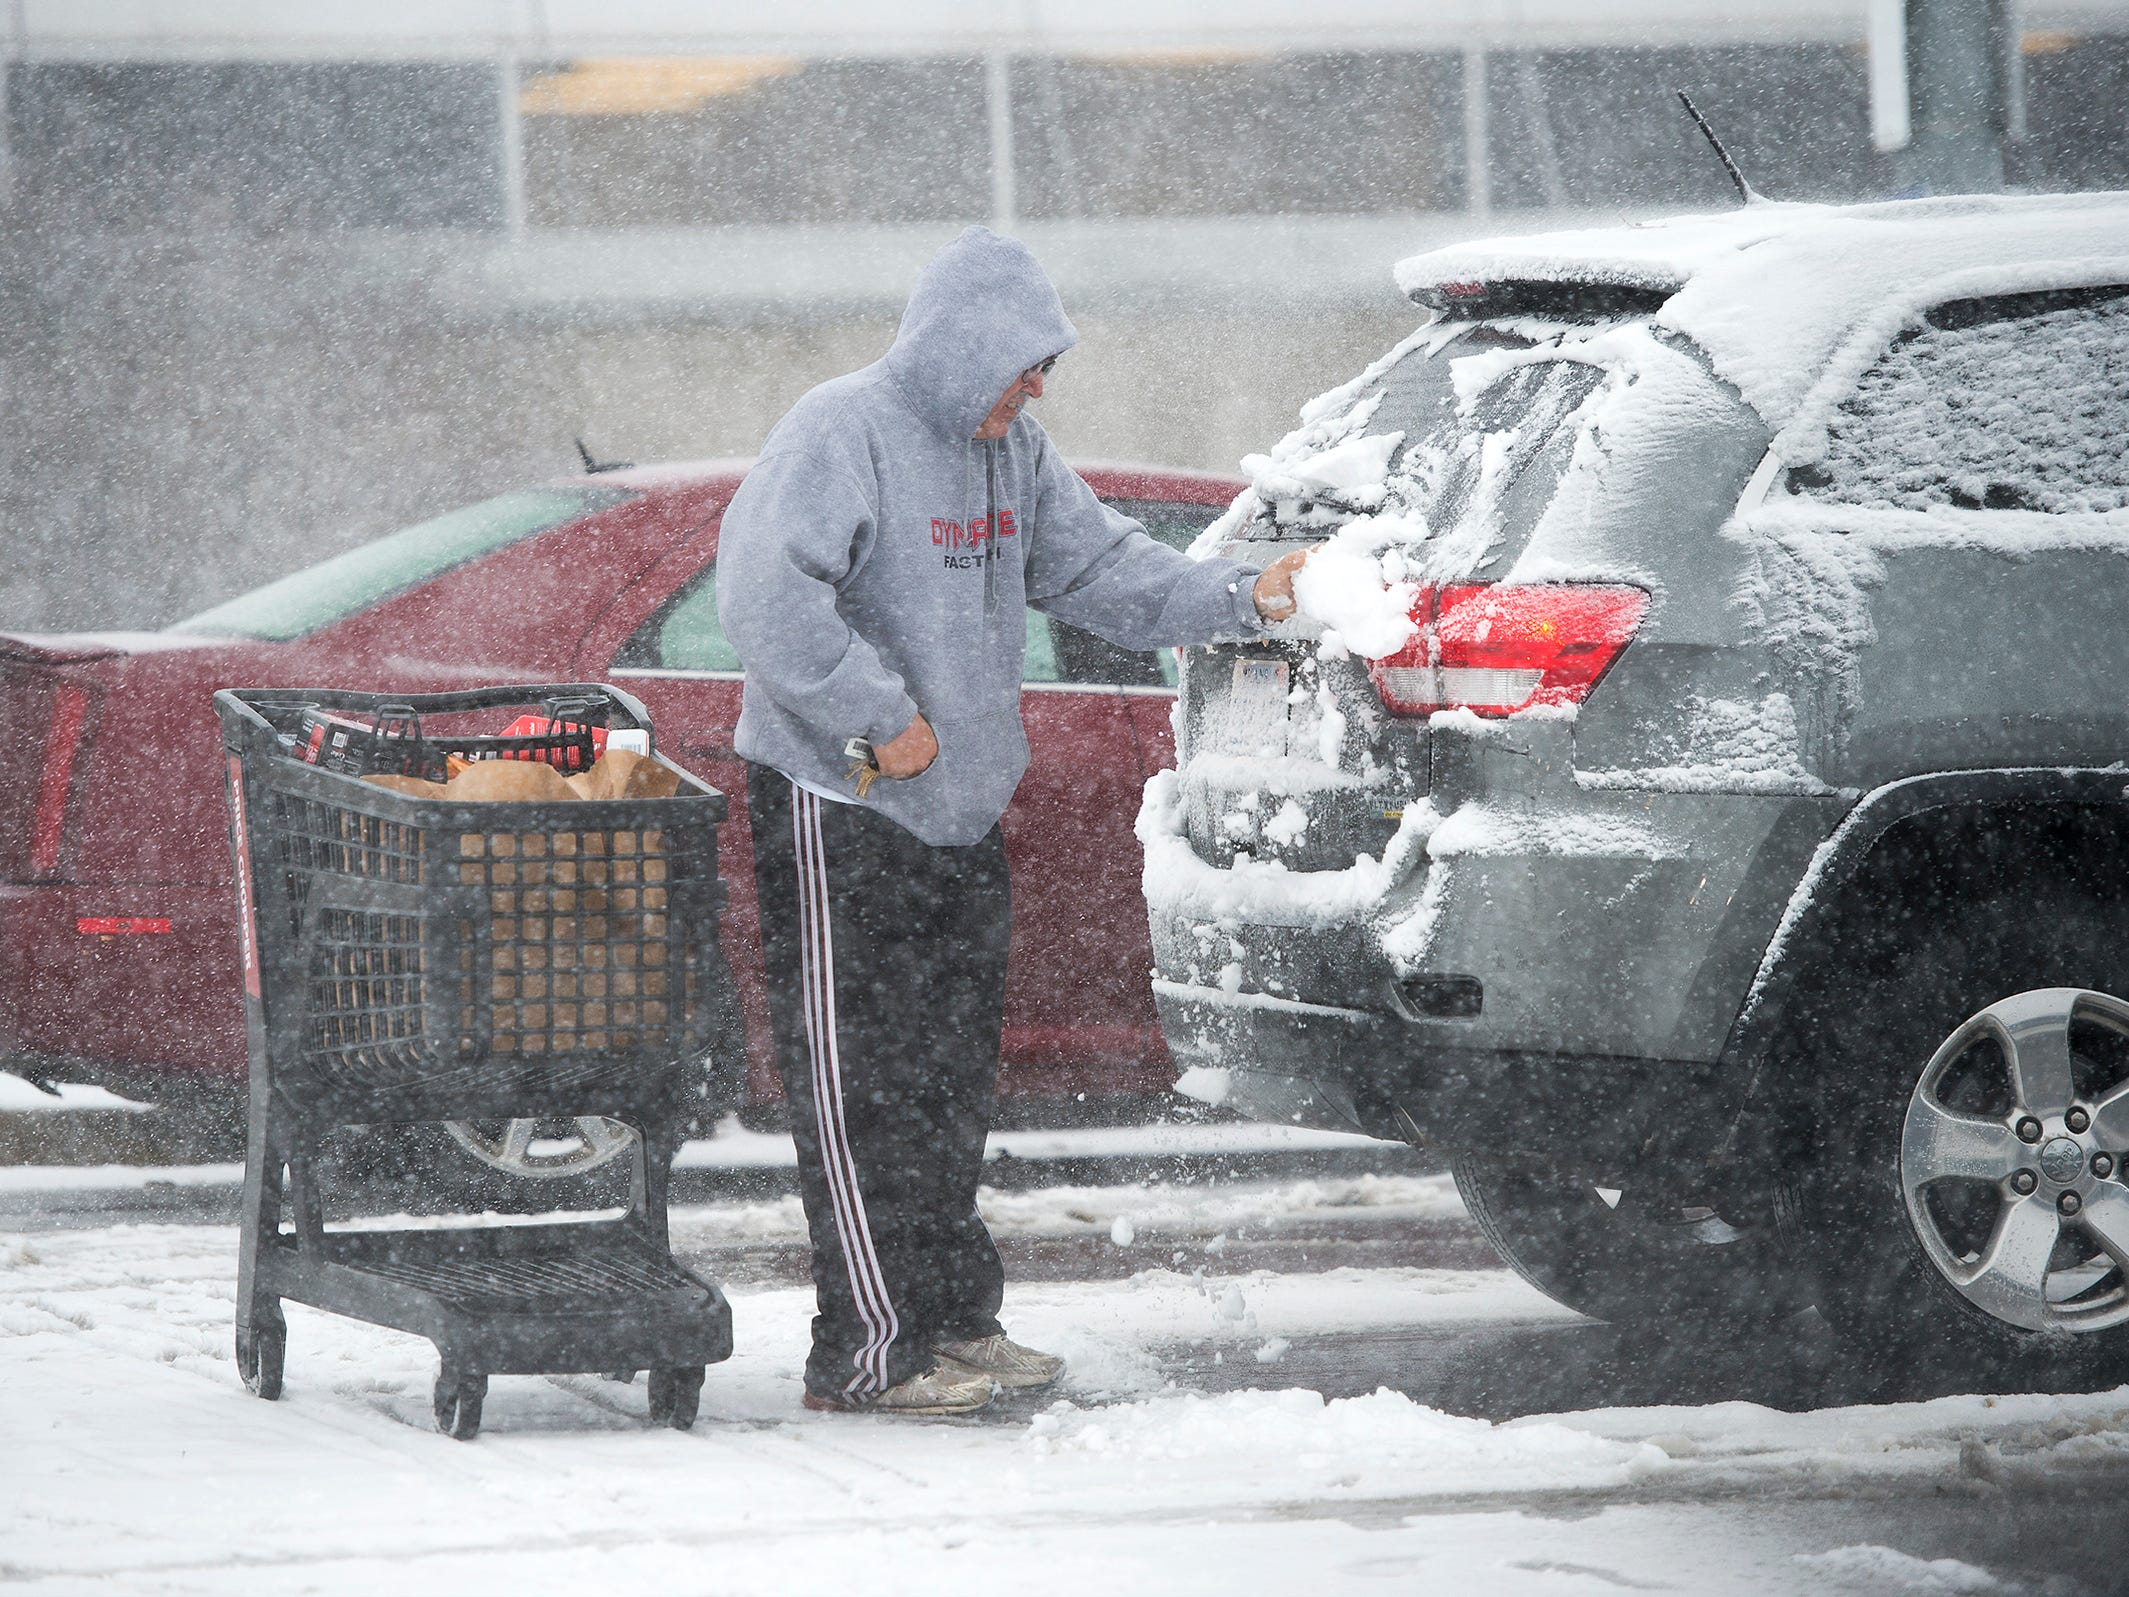 Anthony Walters of Mission, Kan., wipes snow from a vehicle before loading groceries into it on Nov. 25, 2018, in Roeland Park, Kan.